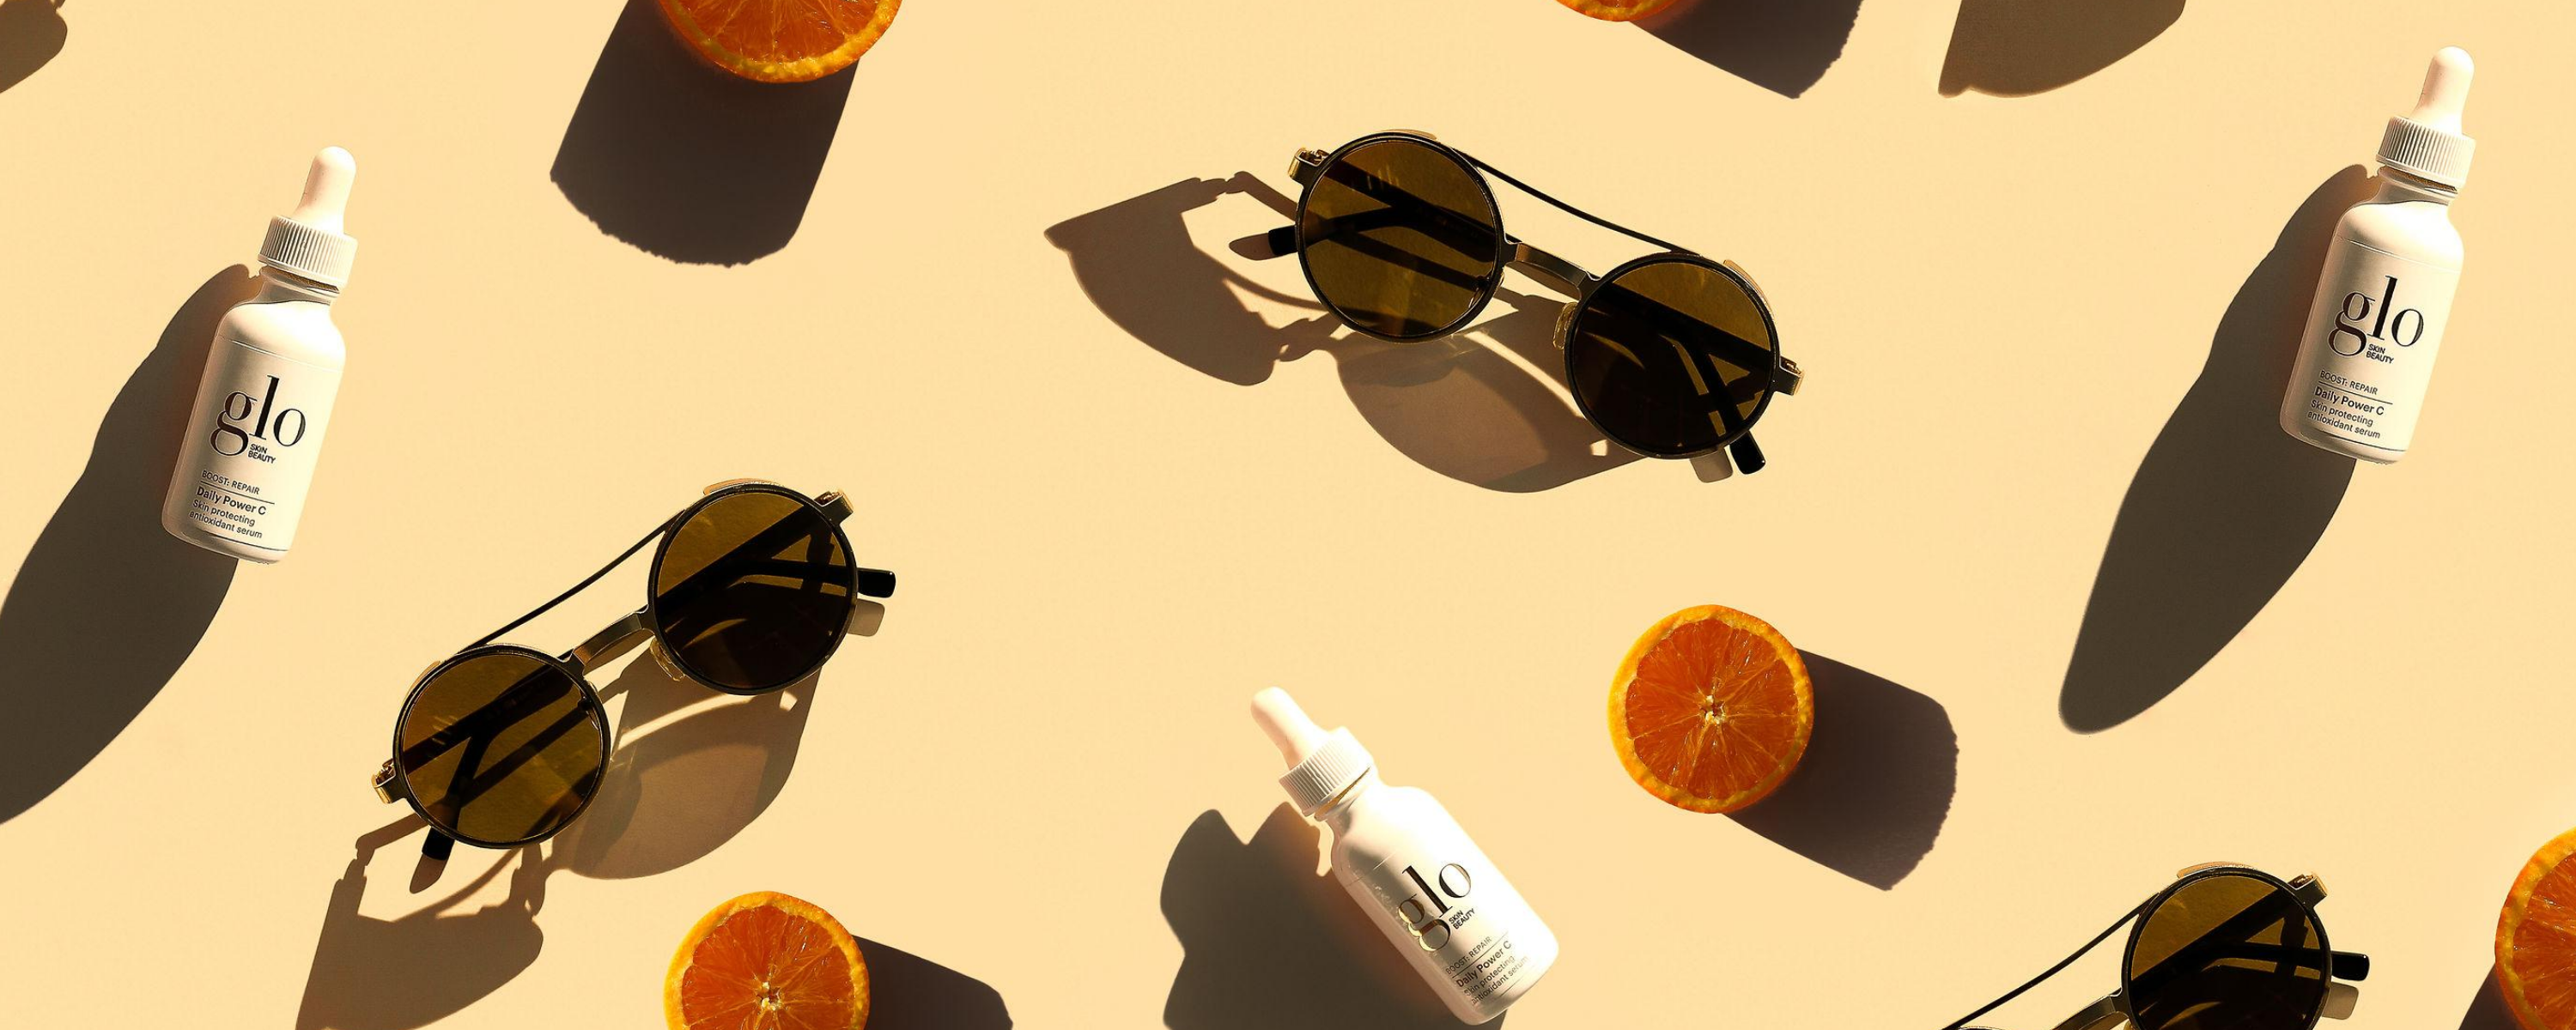 Summer Skincare Routines Aestheticians Swear By